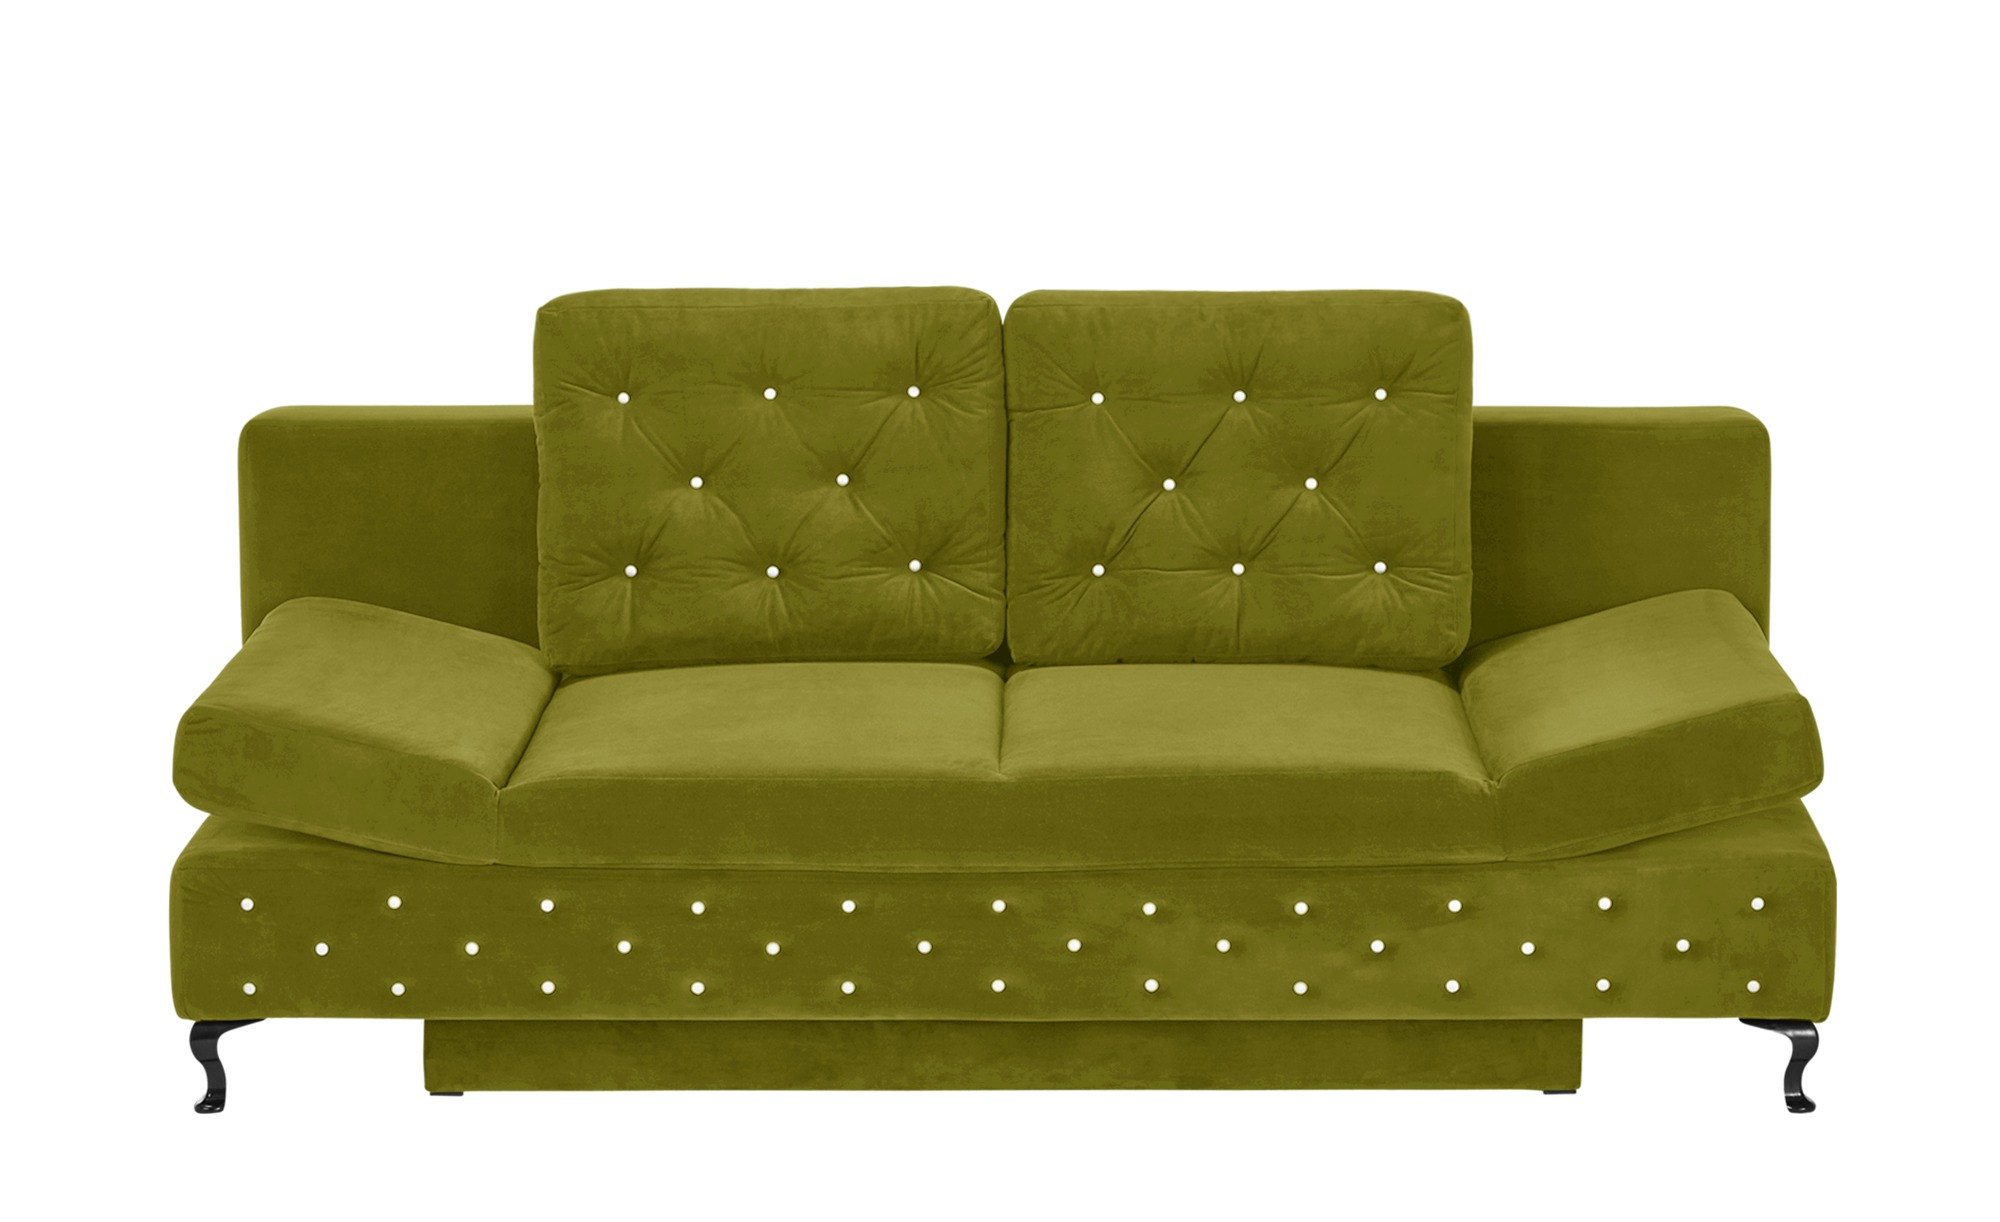 Ledersofa Oder Microfaser Ecksofa Grau | Wo Sofa Kaufen | Sofa Set Online Shopping Philippines | Hersteller Schlafsofa | Chesterfield Sofa For Sale Mancheste… | Schlafsofa, Sofa, Sofa Design